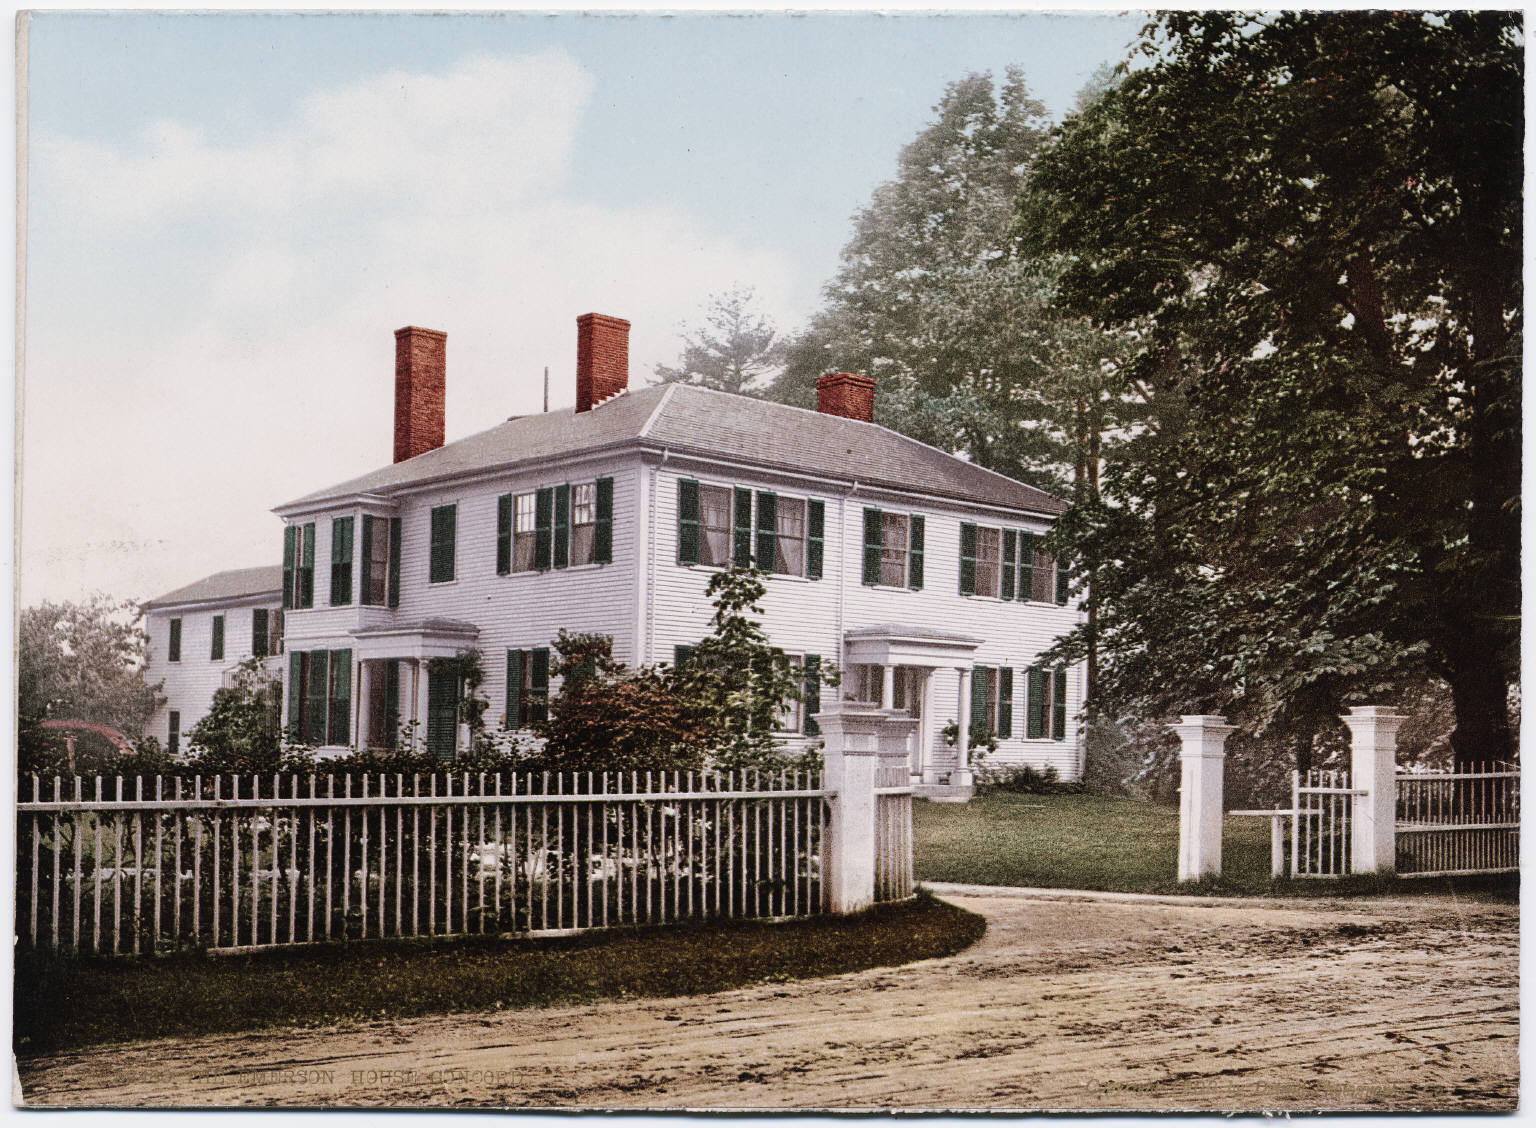 The Emerson House Concord Massachusetts Jan Olof Bengtsson